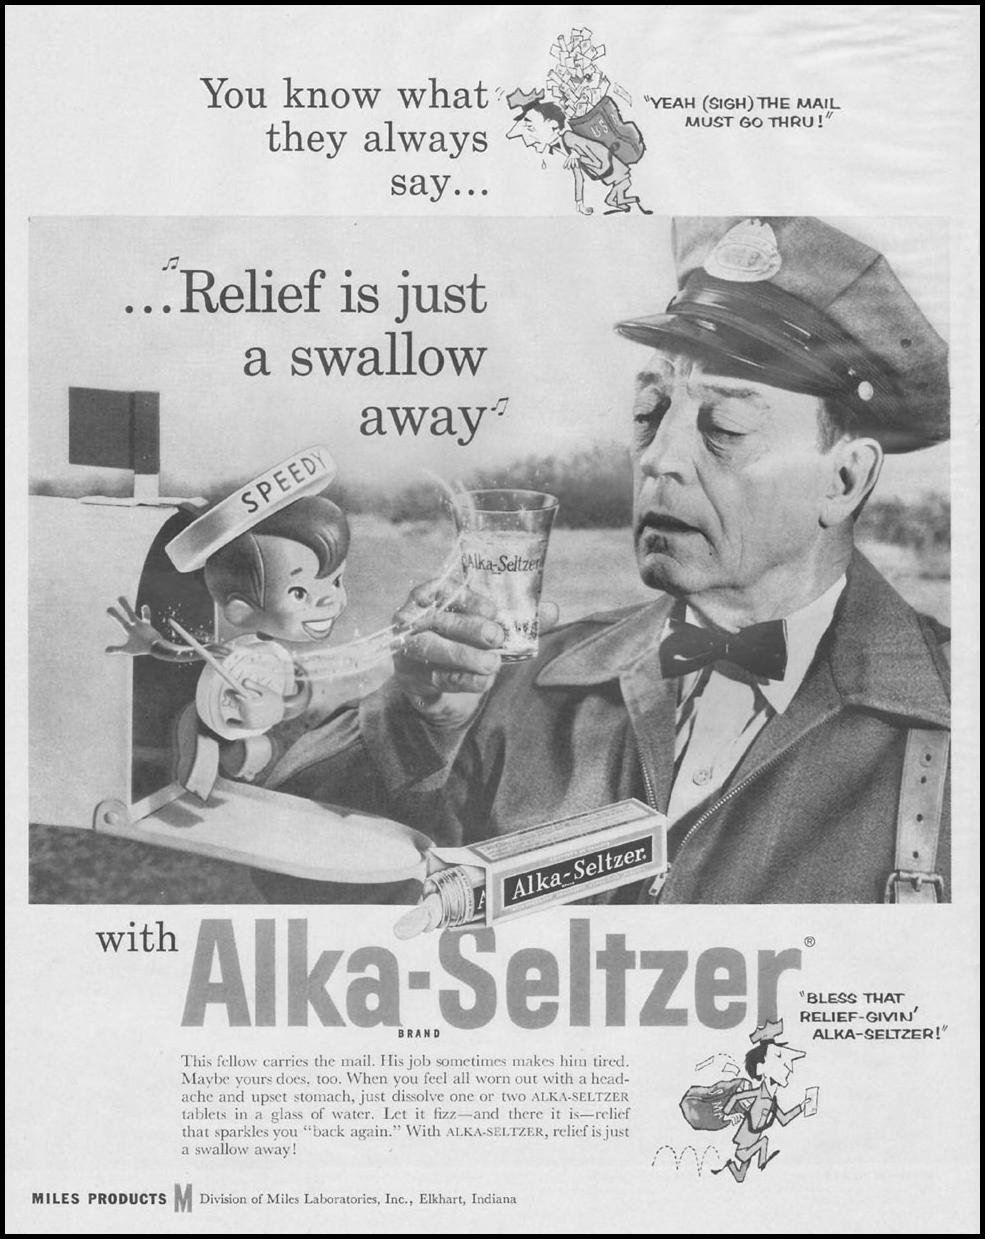 ALKA-SELTZER